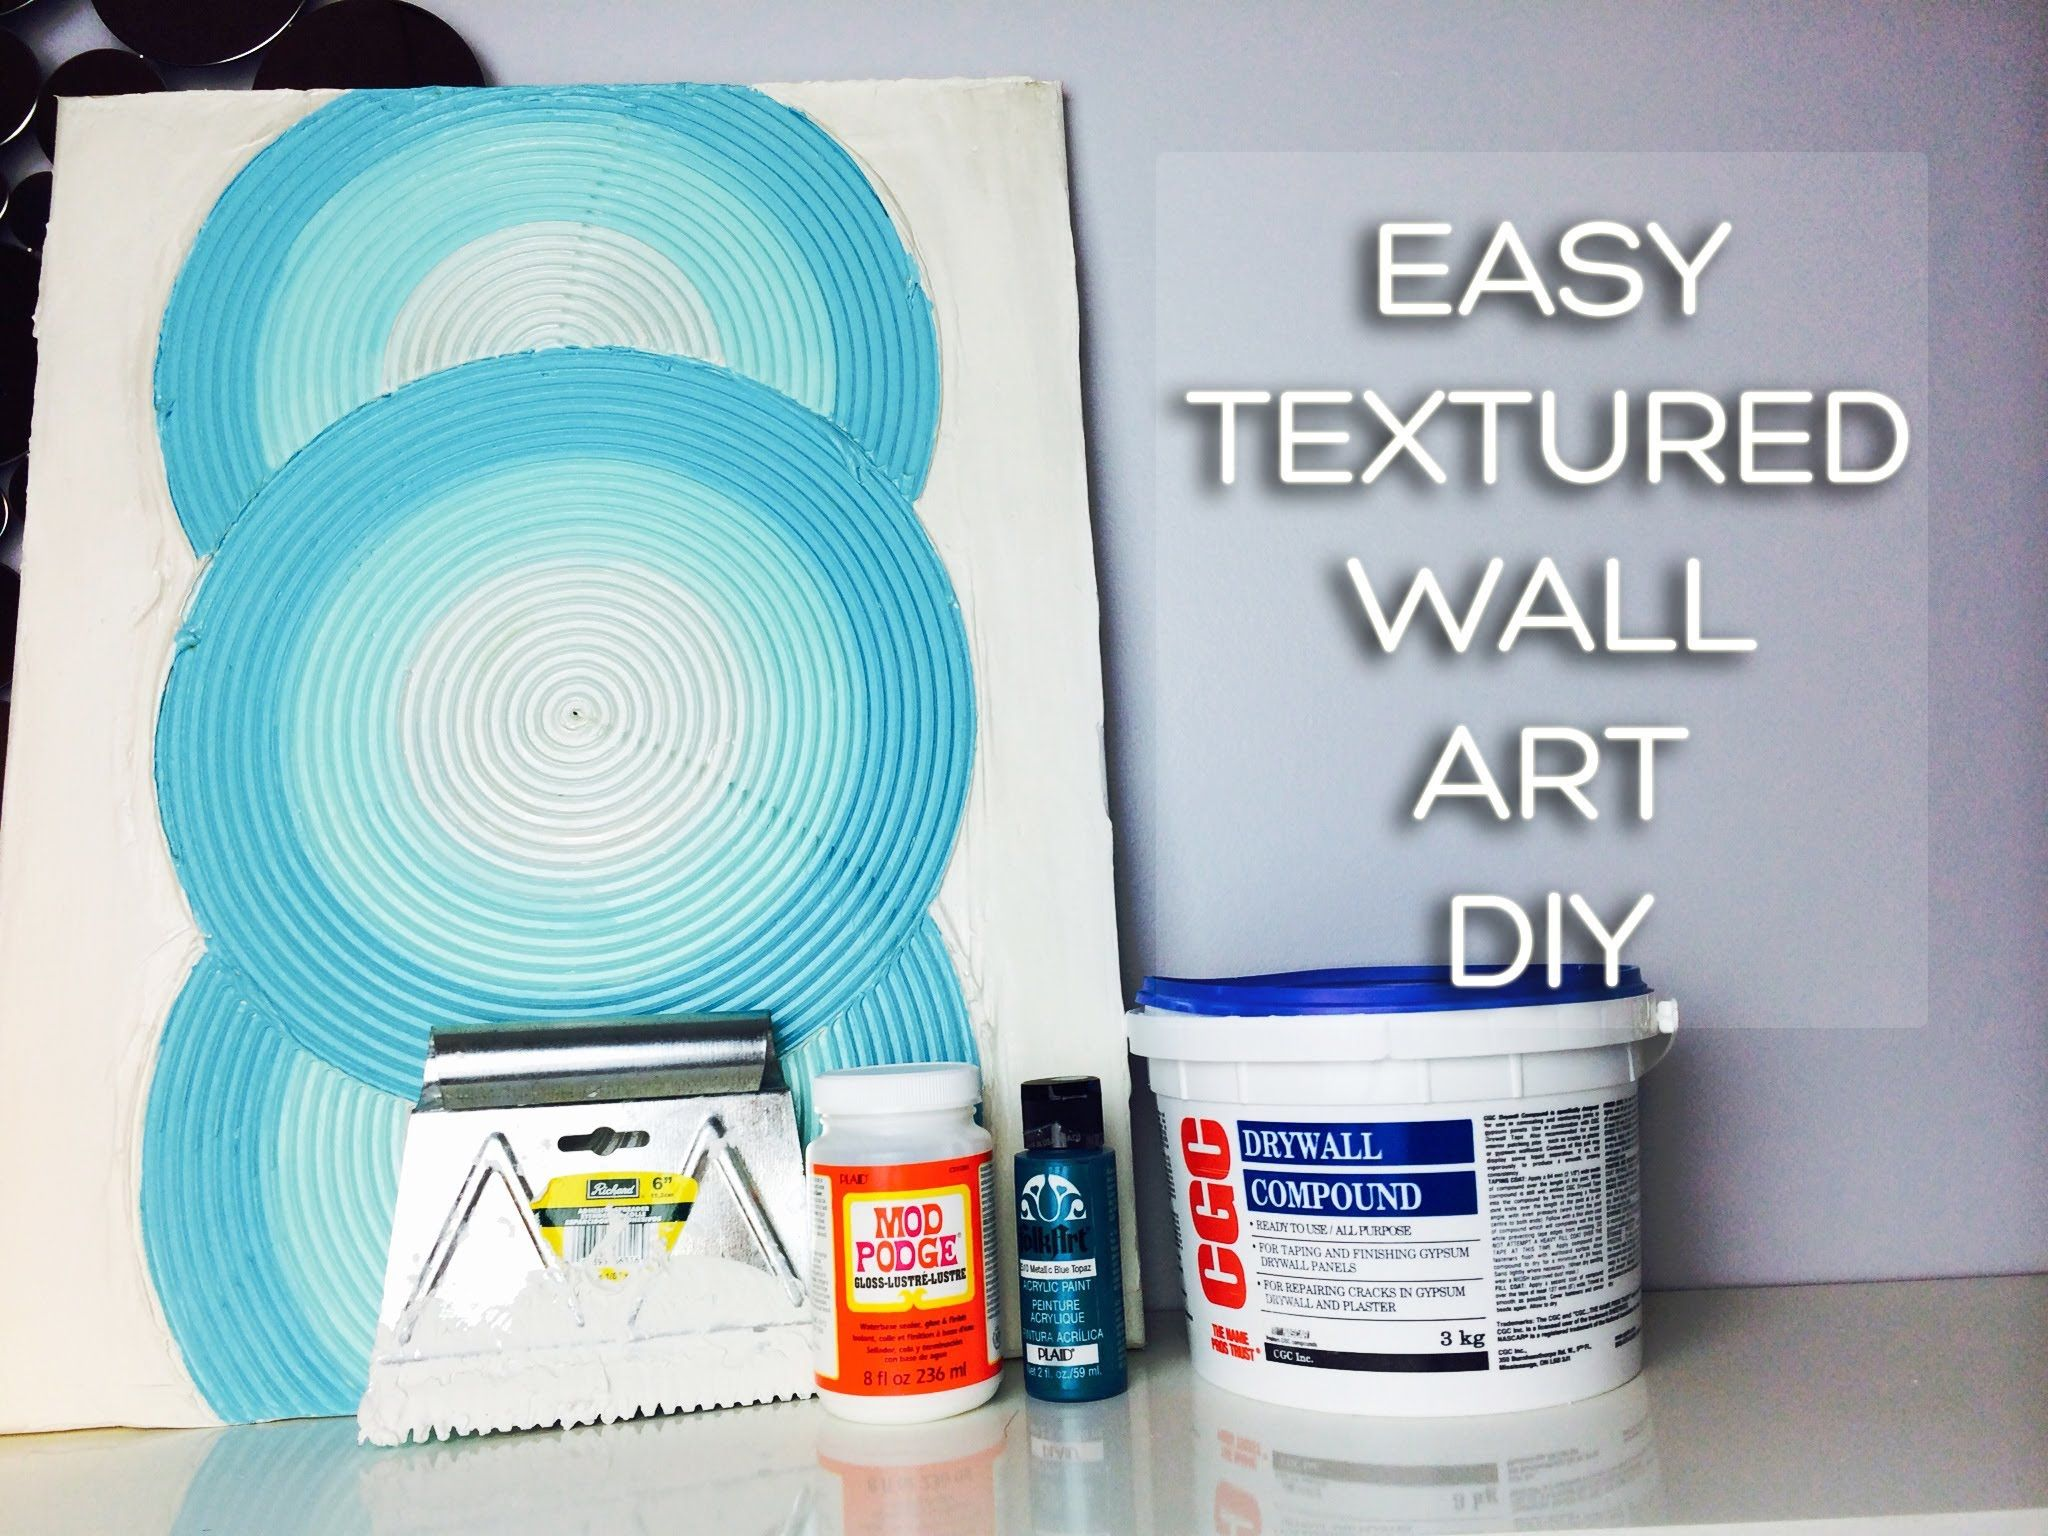 Try a new medium ... drywall mud can be used on canvas or walls ... check out these tips. #drywallmud #artistmediums #clay .OneMorePress.com & Try a new medium ... drywall mud can be used on canvas or walls ...